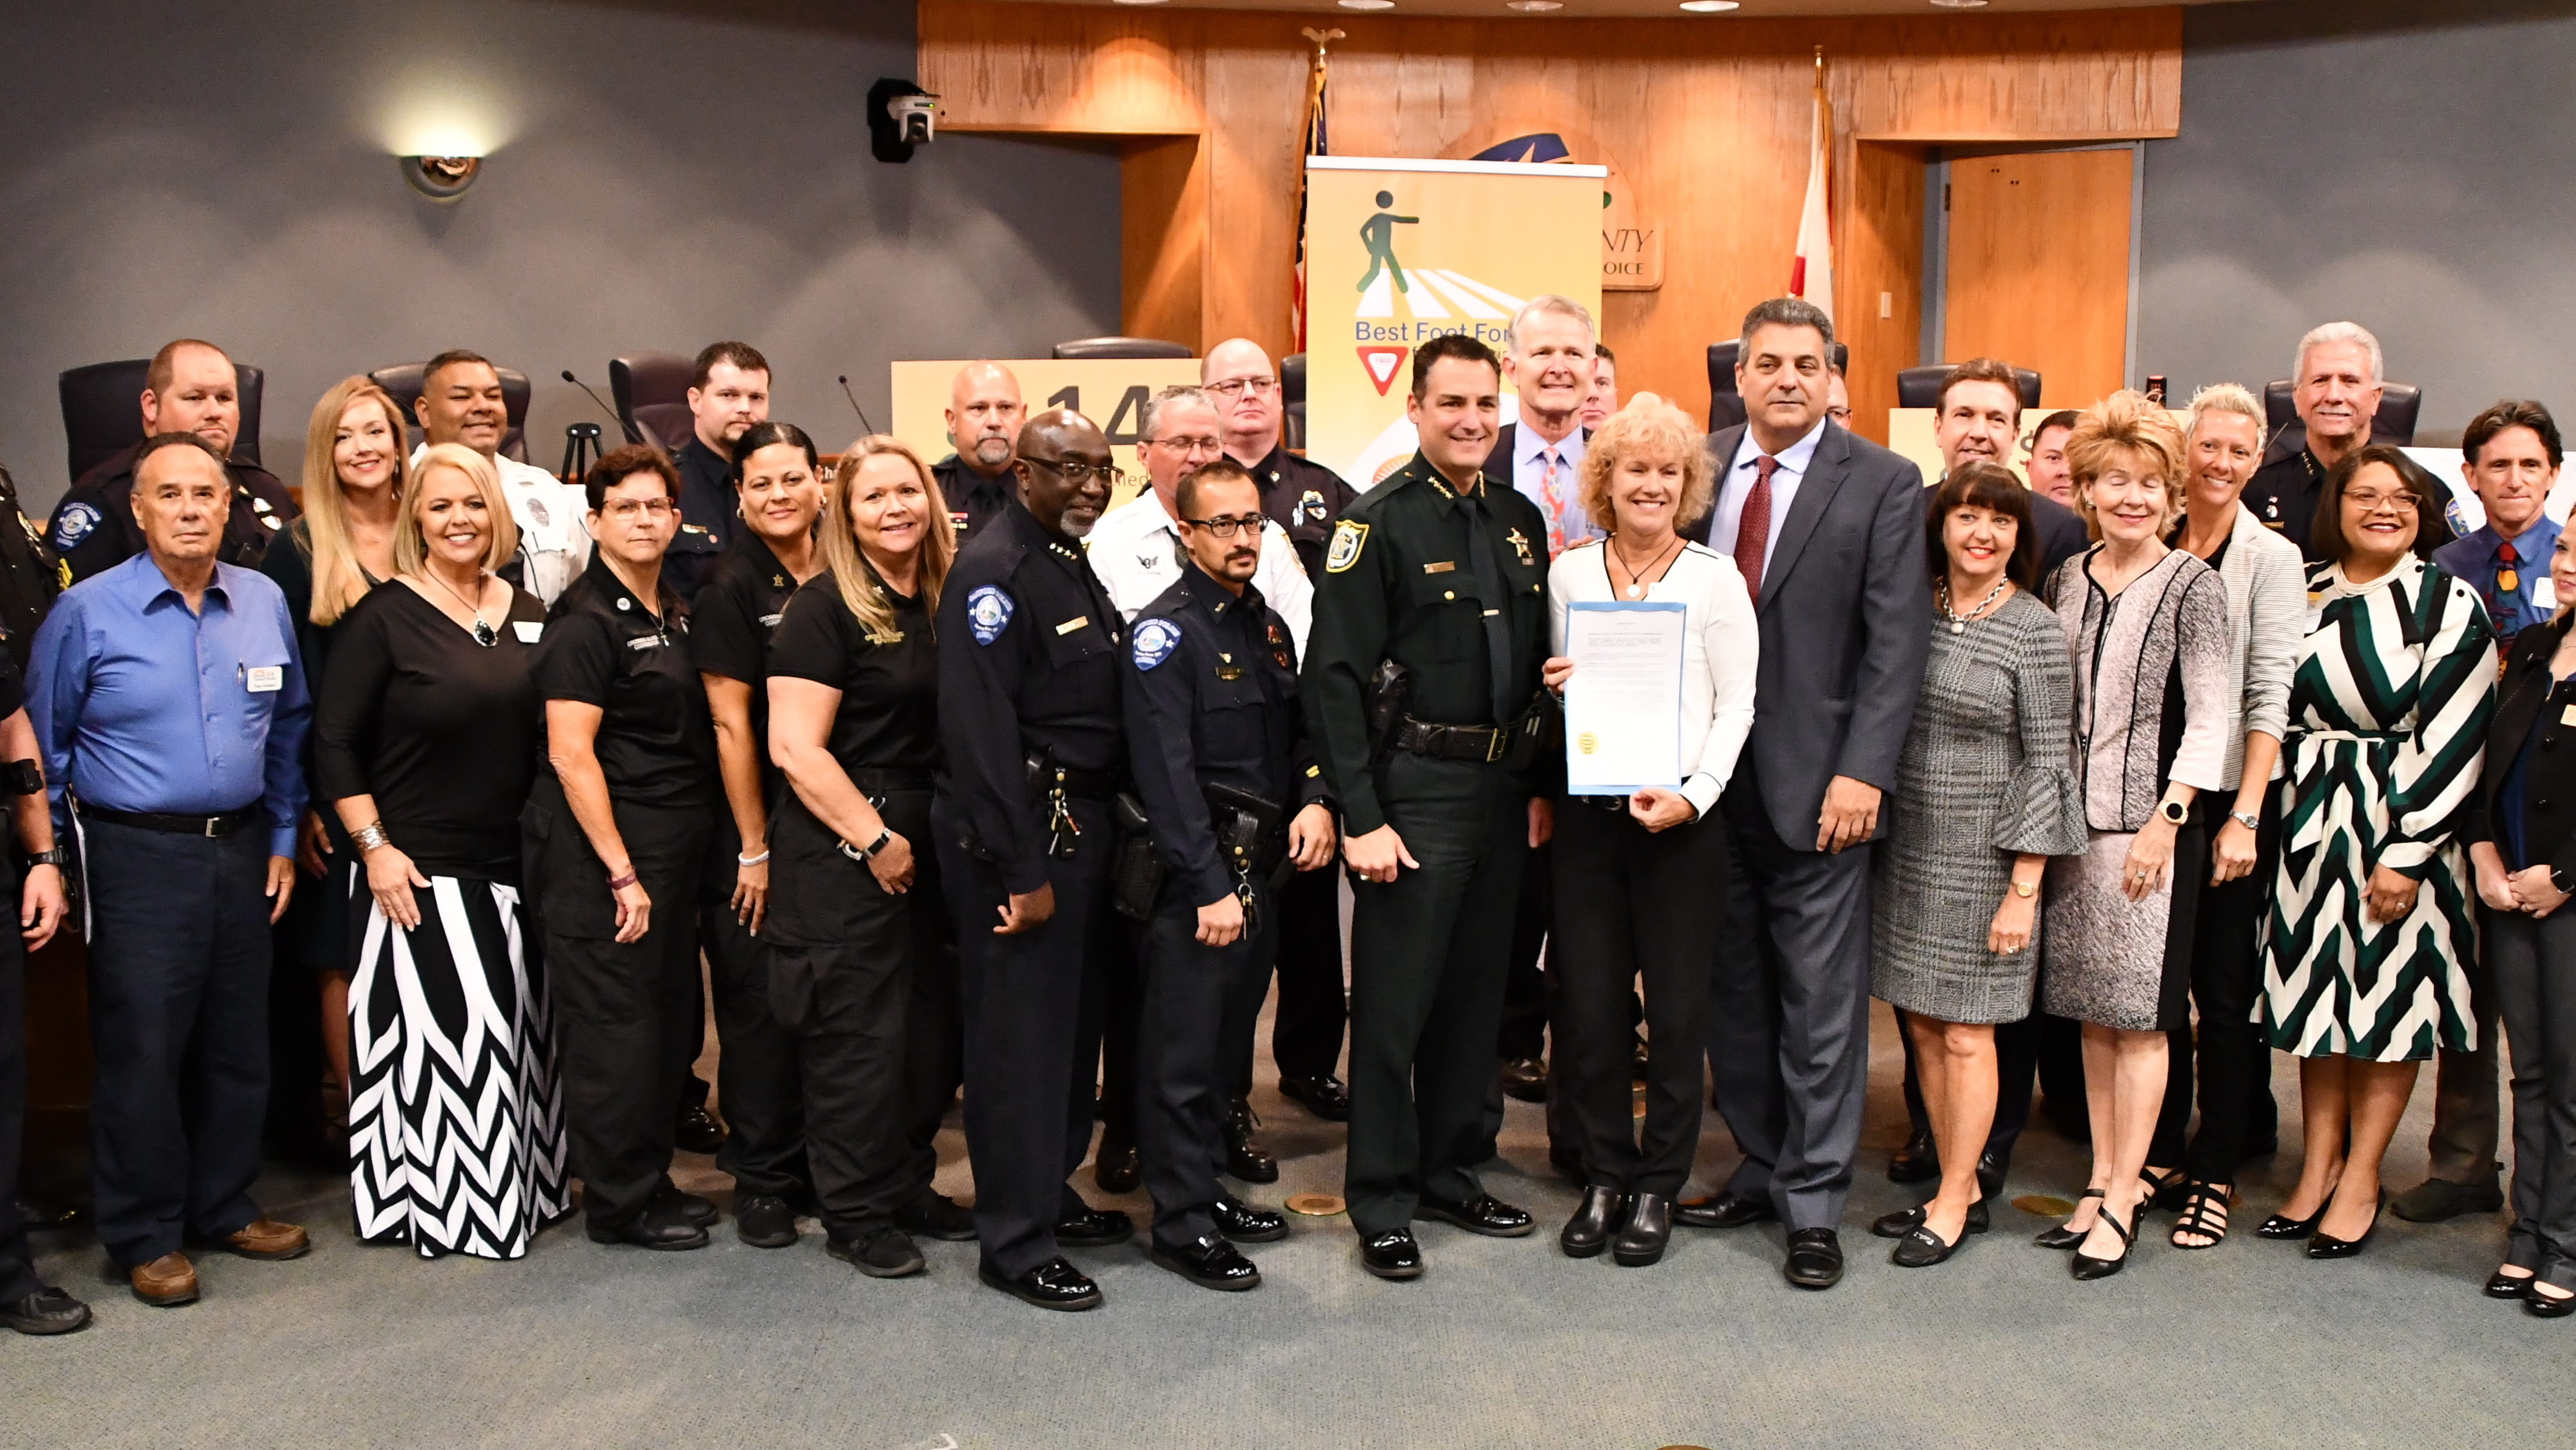 Teamwork Was The Central Message As Best Foot Forward Launched In Seminole County